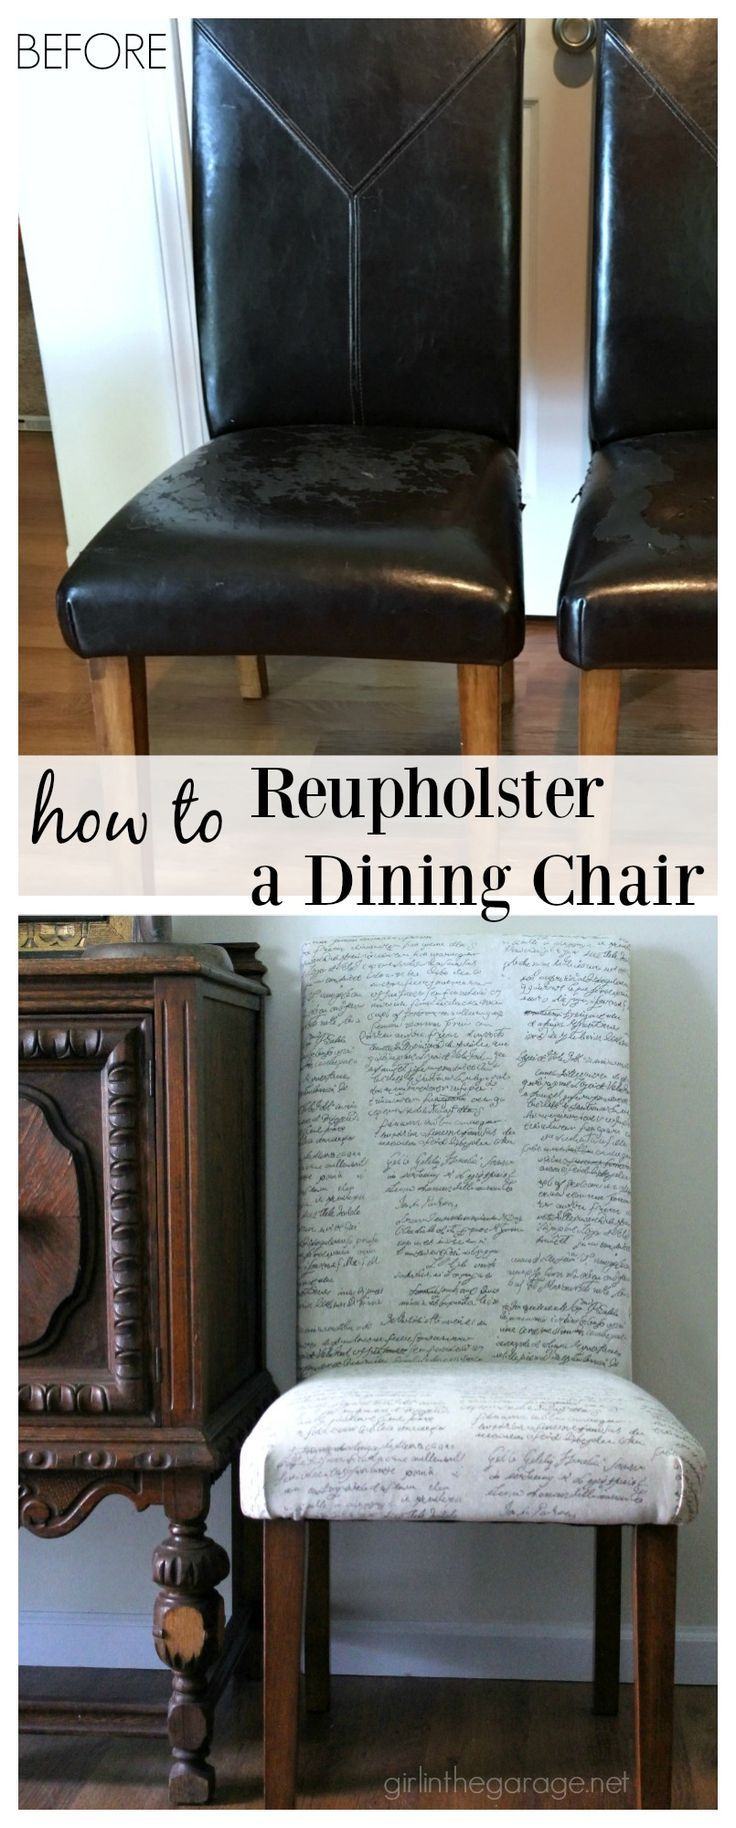 How To Reupholster A Dining Chair Straying From Your Usual Type Of Project